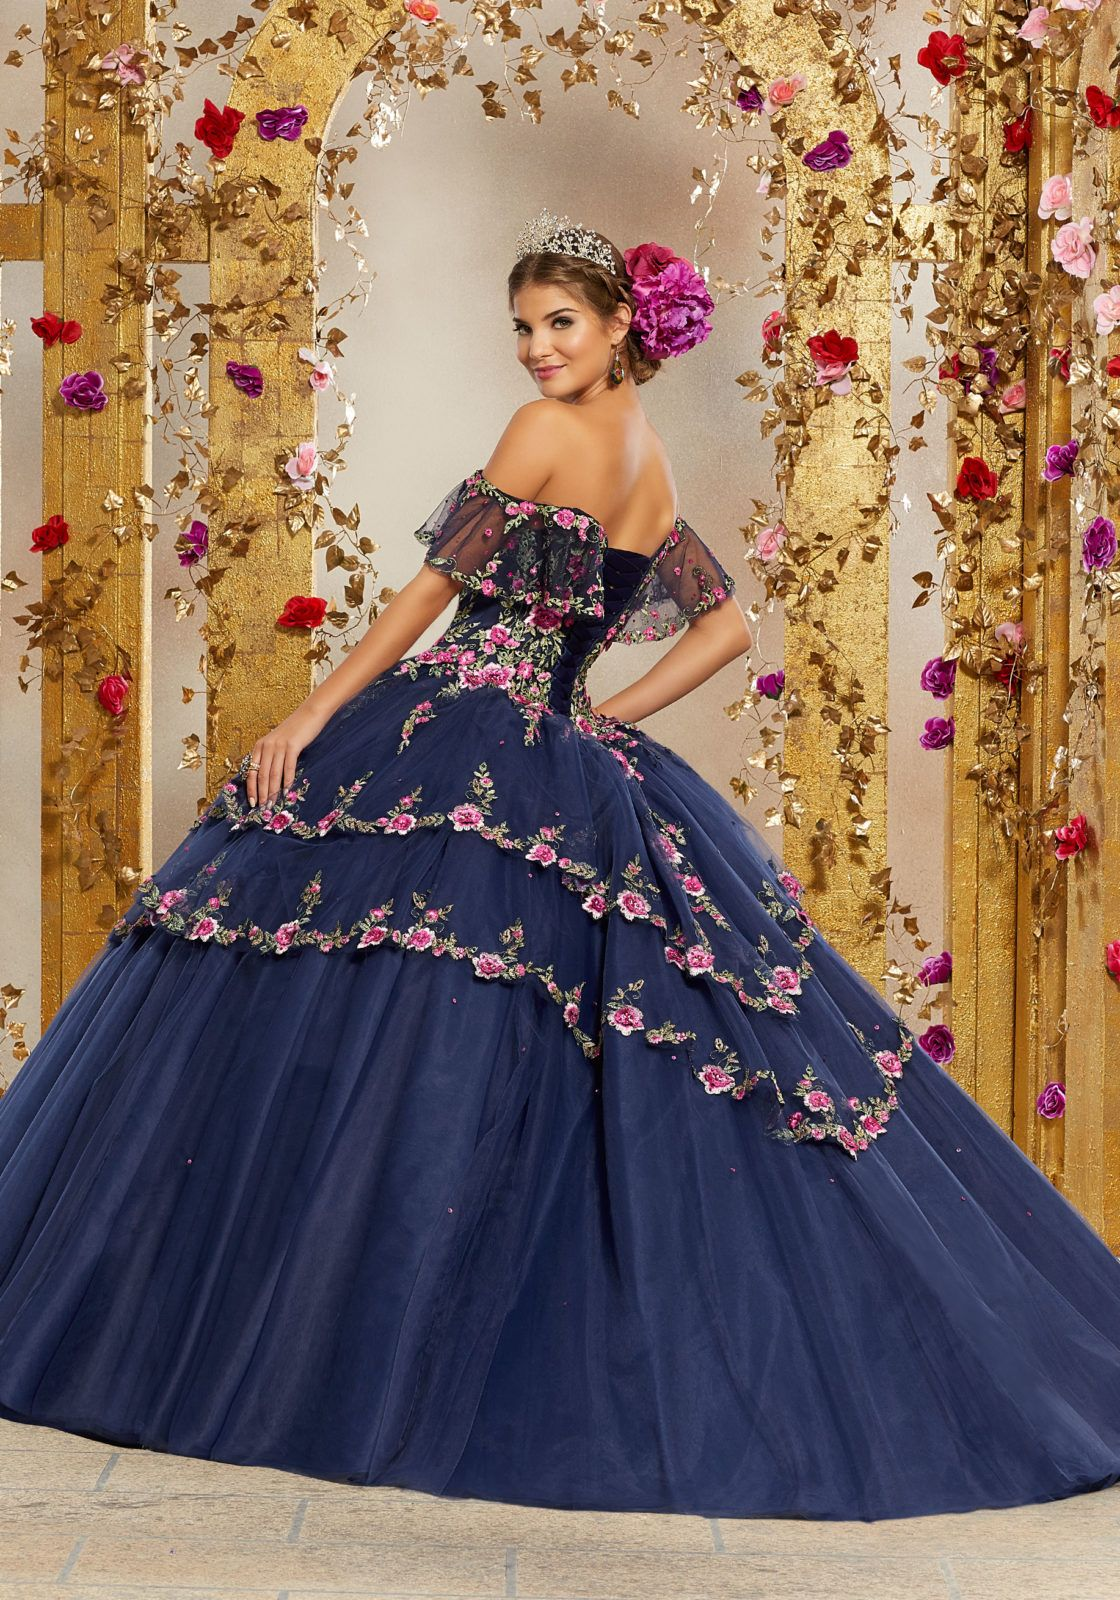 d58f30190fb STYLE  34004 Glamorous Quinceañera Dress Featuring an Off the Shoulder  Flounced Neckline and Full Tiered